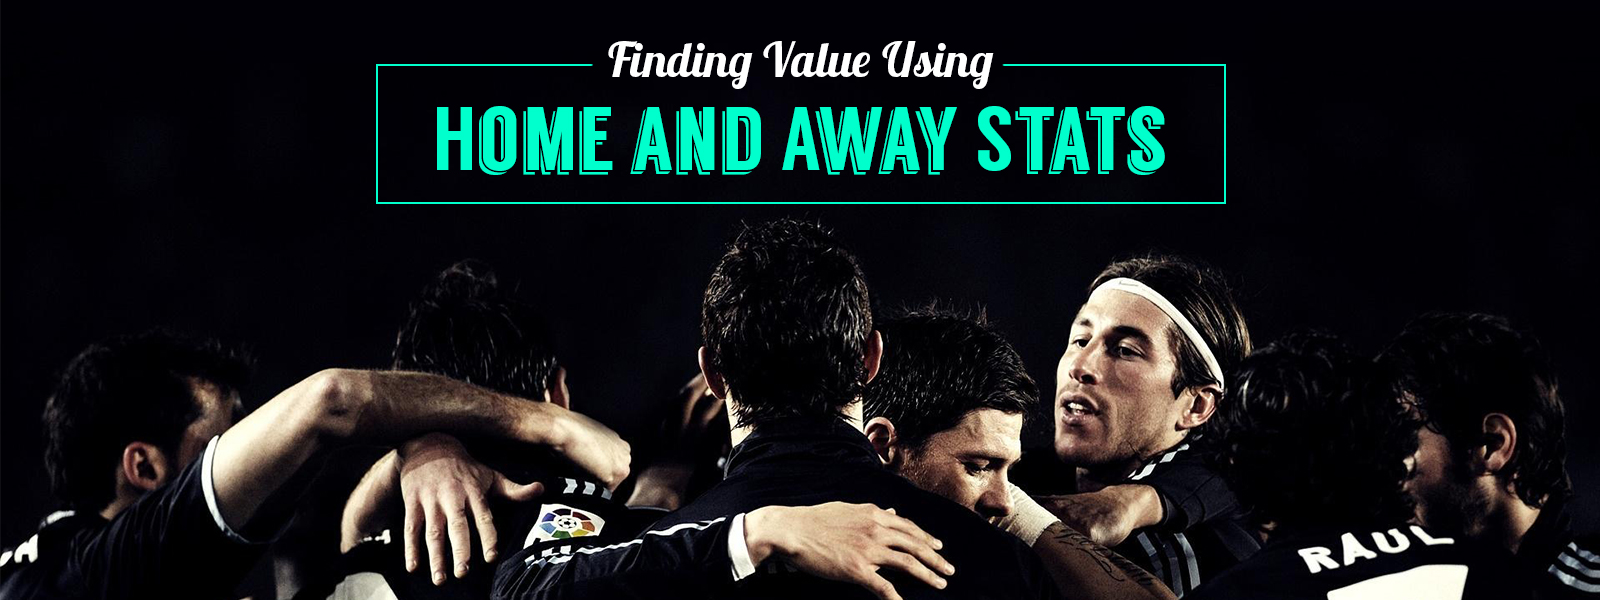 Finding Value Using Home and Away Statistics